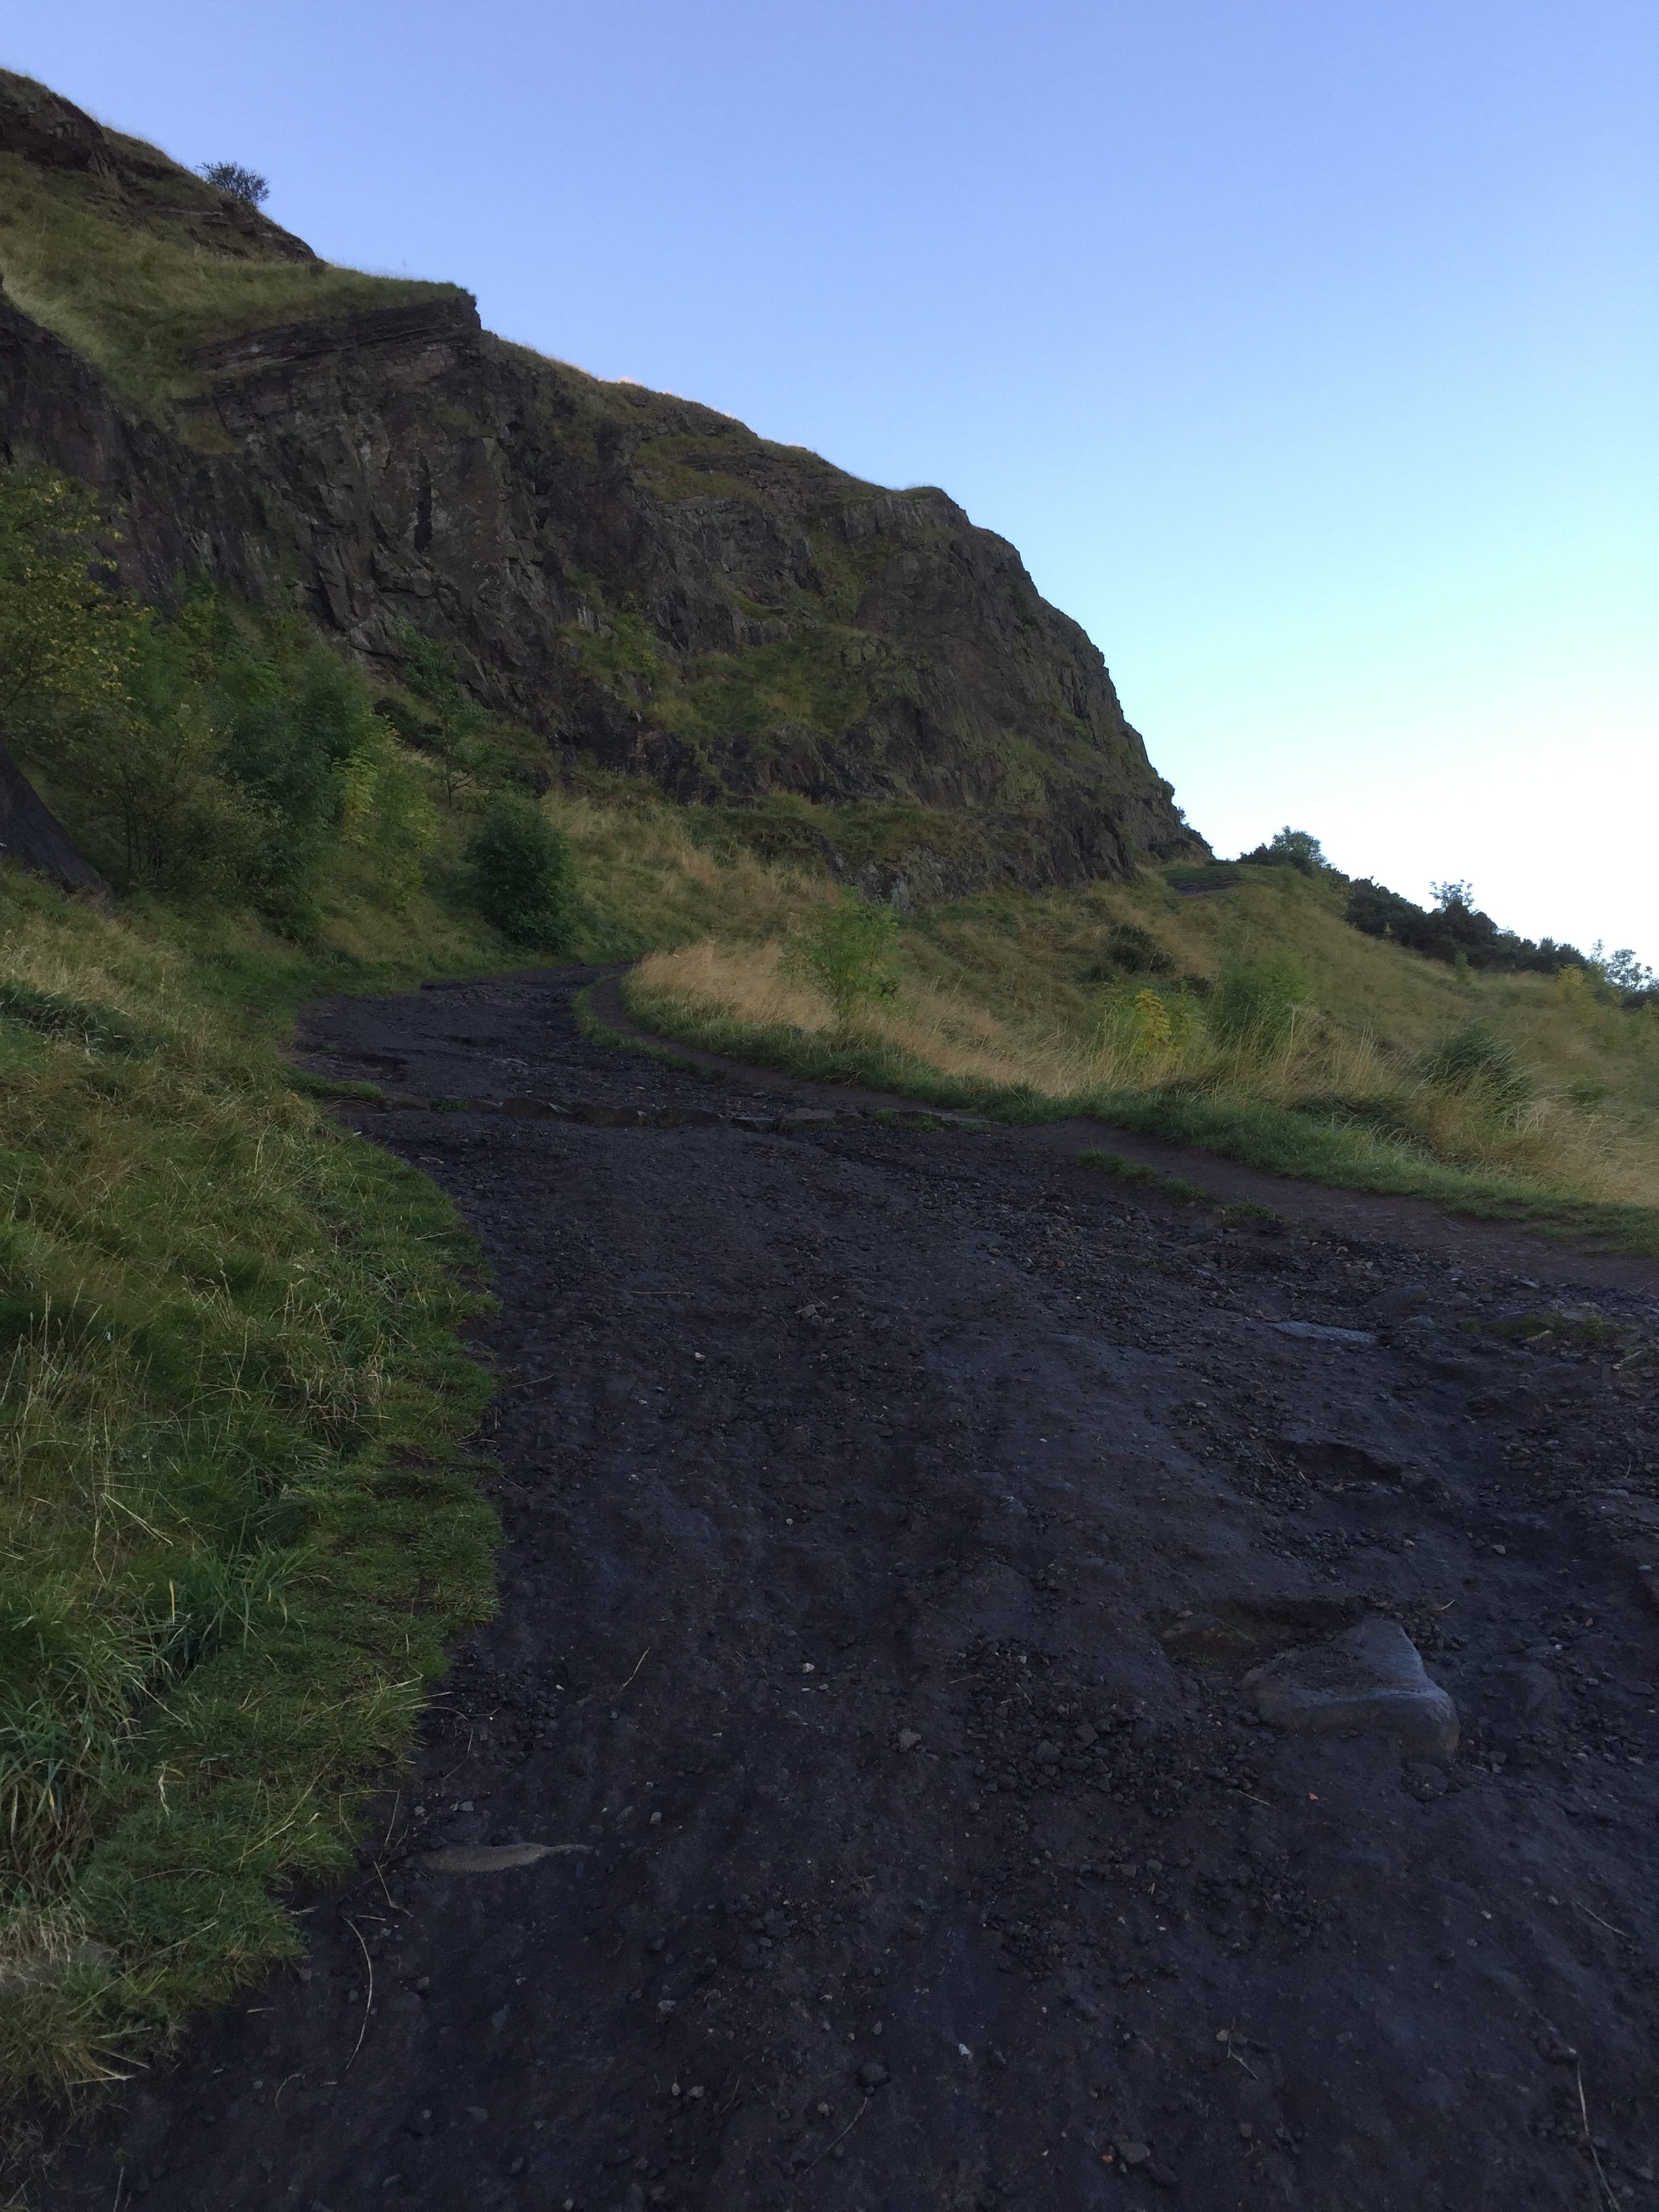 Hiking path to a hill called Arthur's Seat in Edinburgh, Scotland.